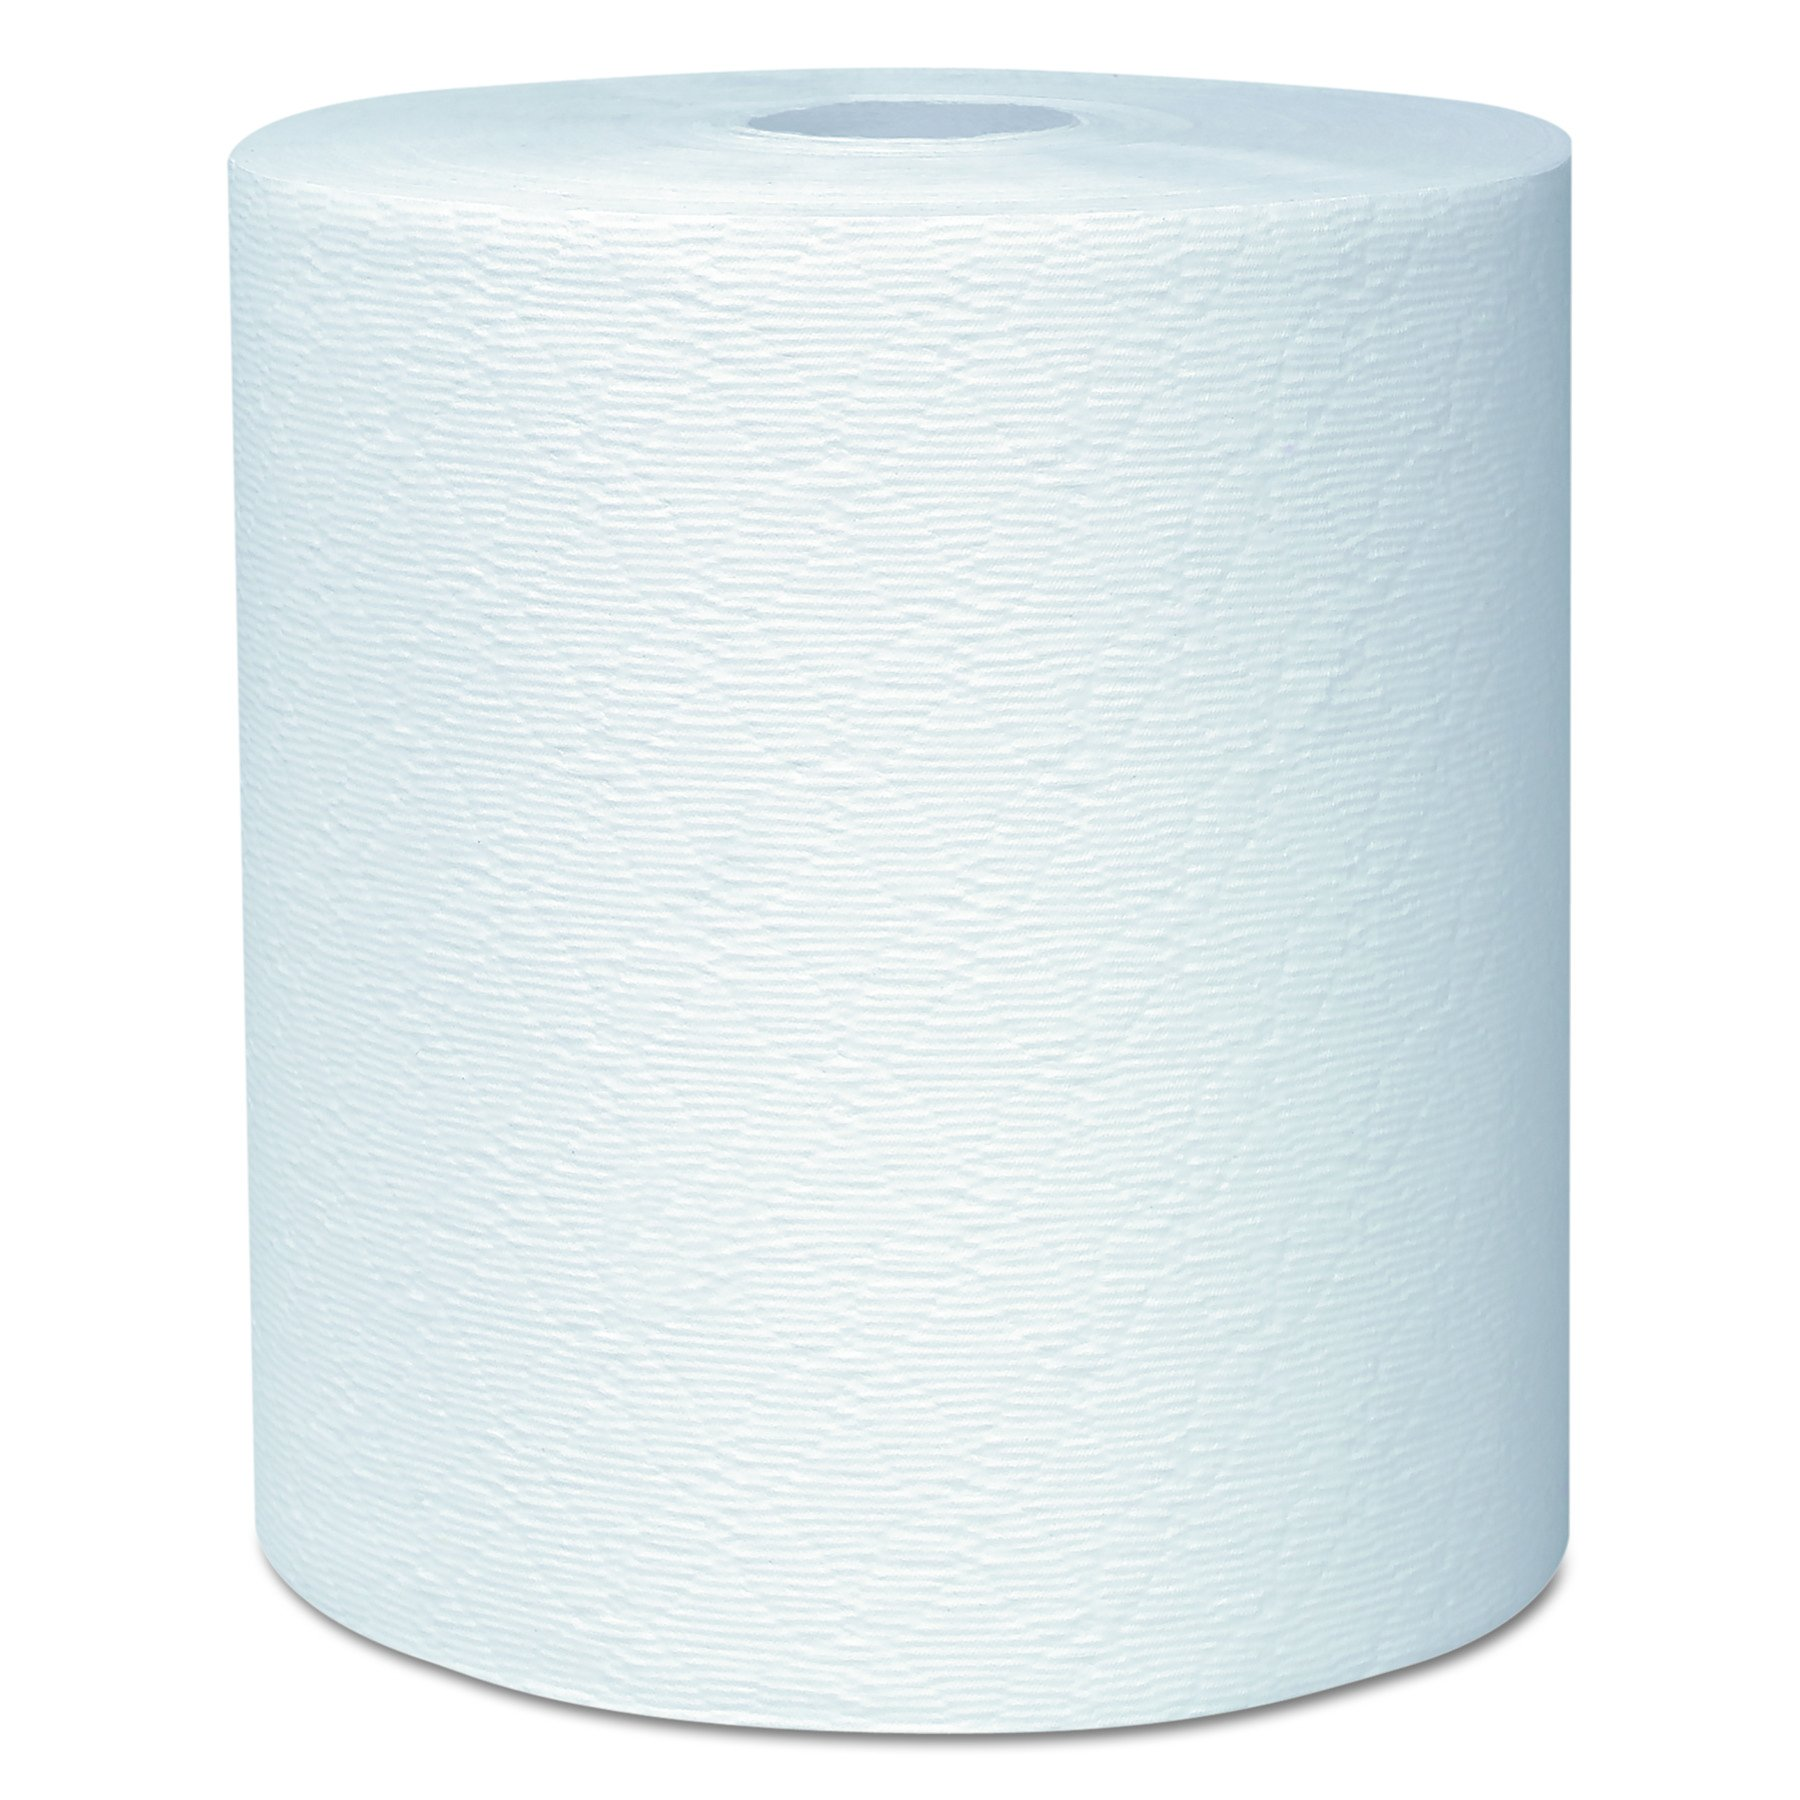 Kleenex 50606 Hard Roll Towels, 8 x 600ft, 1 3/4'' Core dia, White (Case of 6 Rolls)